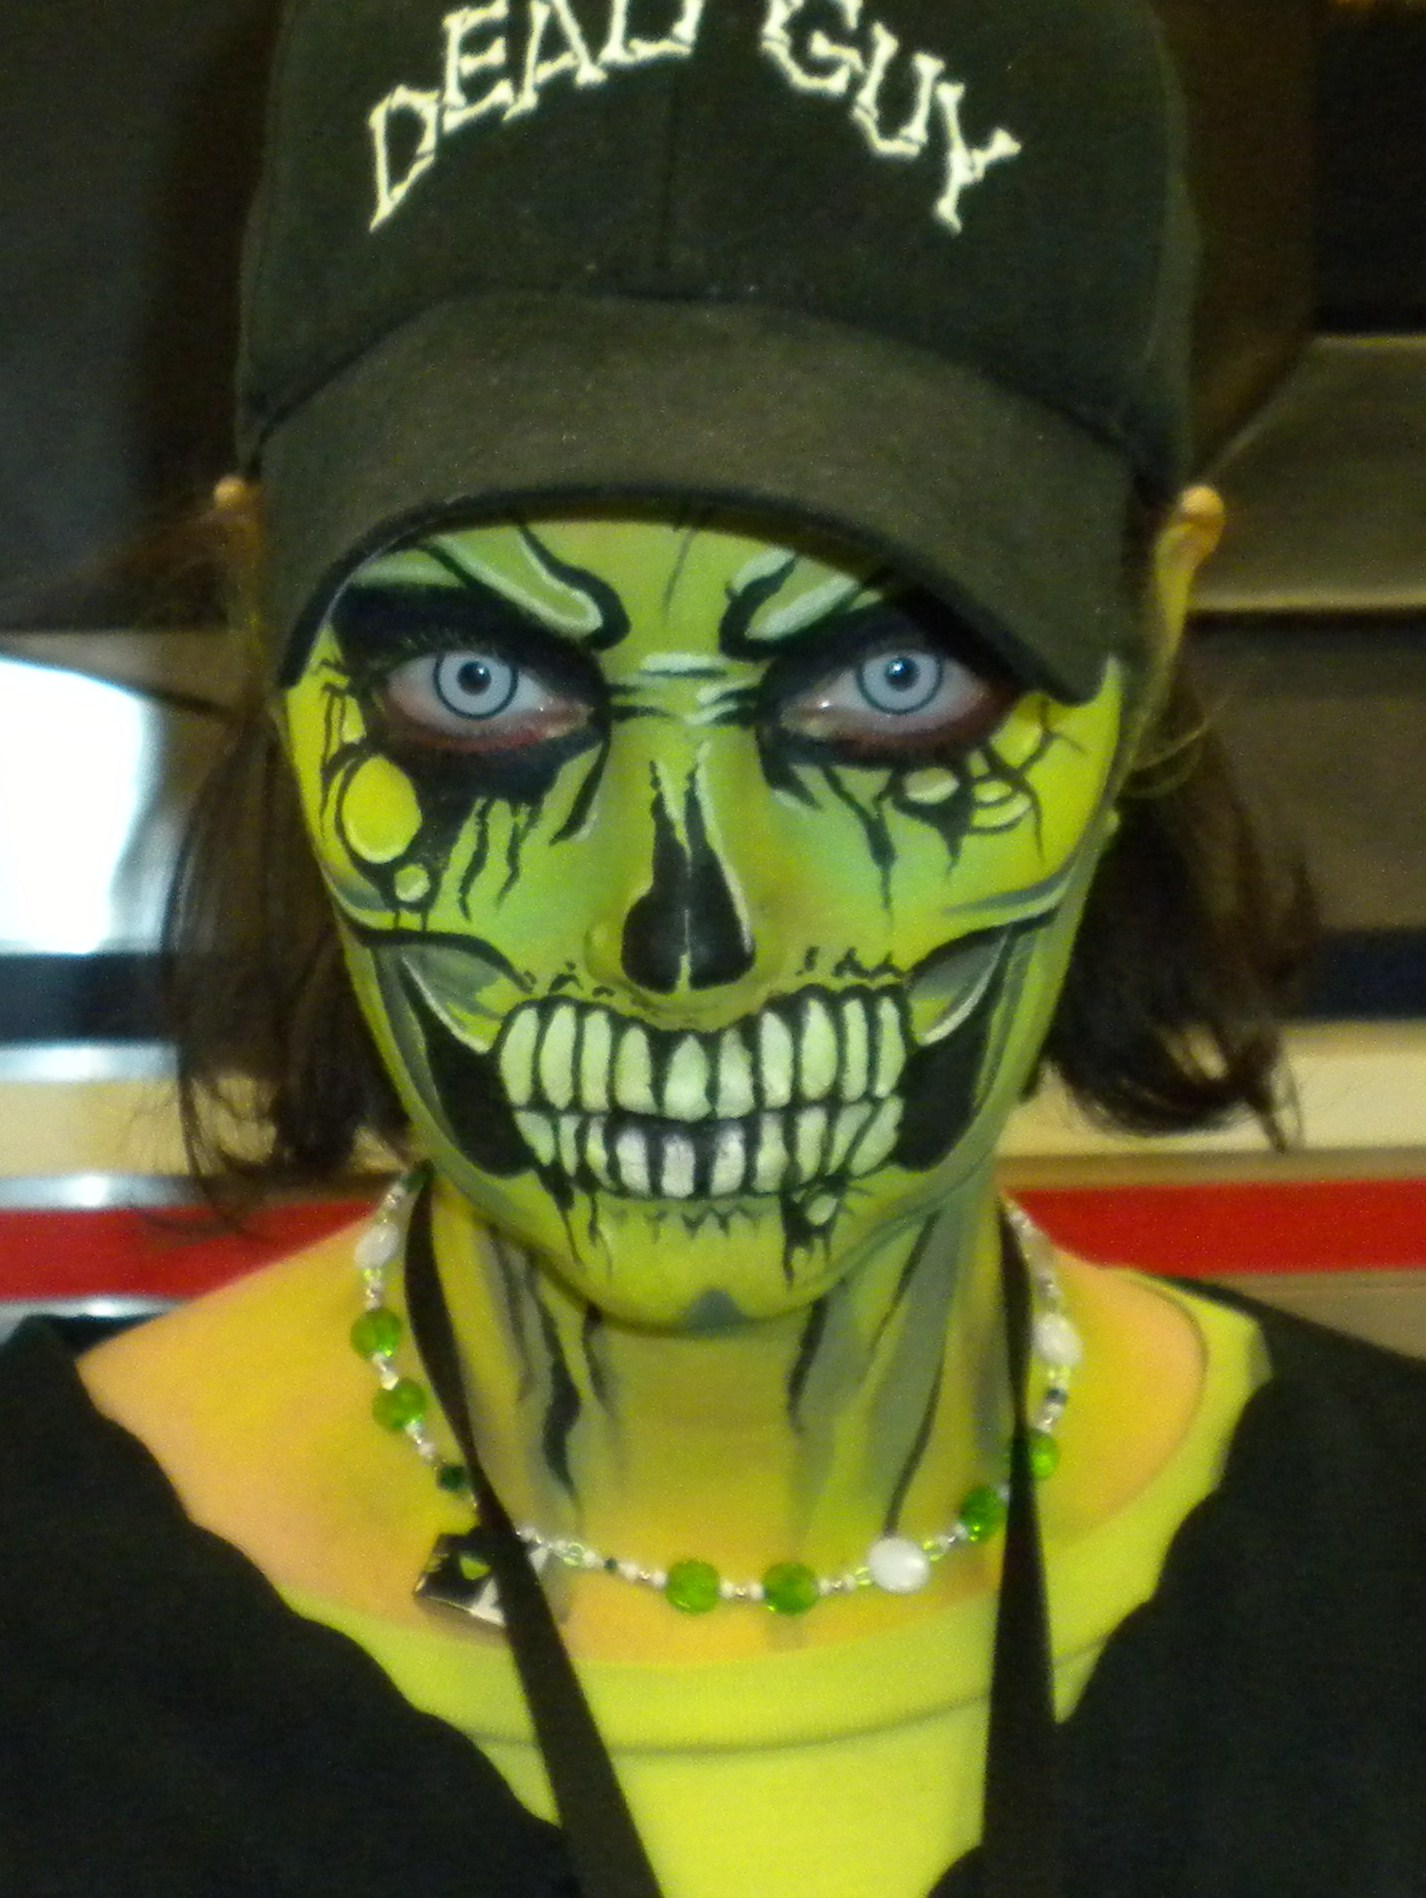 dead_guy_zombie_face_paint_halloween_ohio_body_art_deborah_brommer.jpg